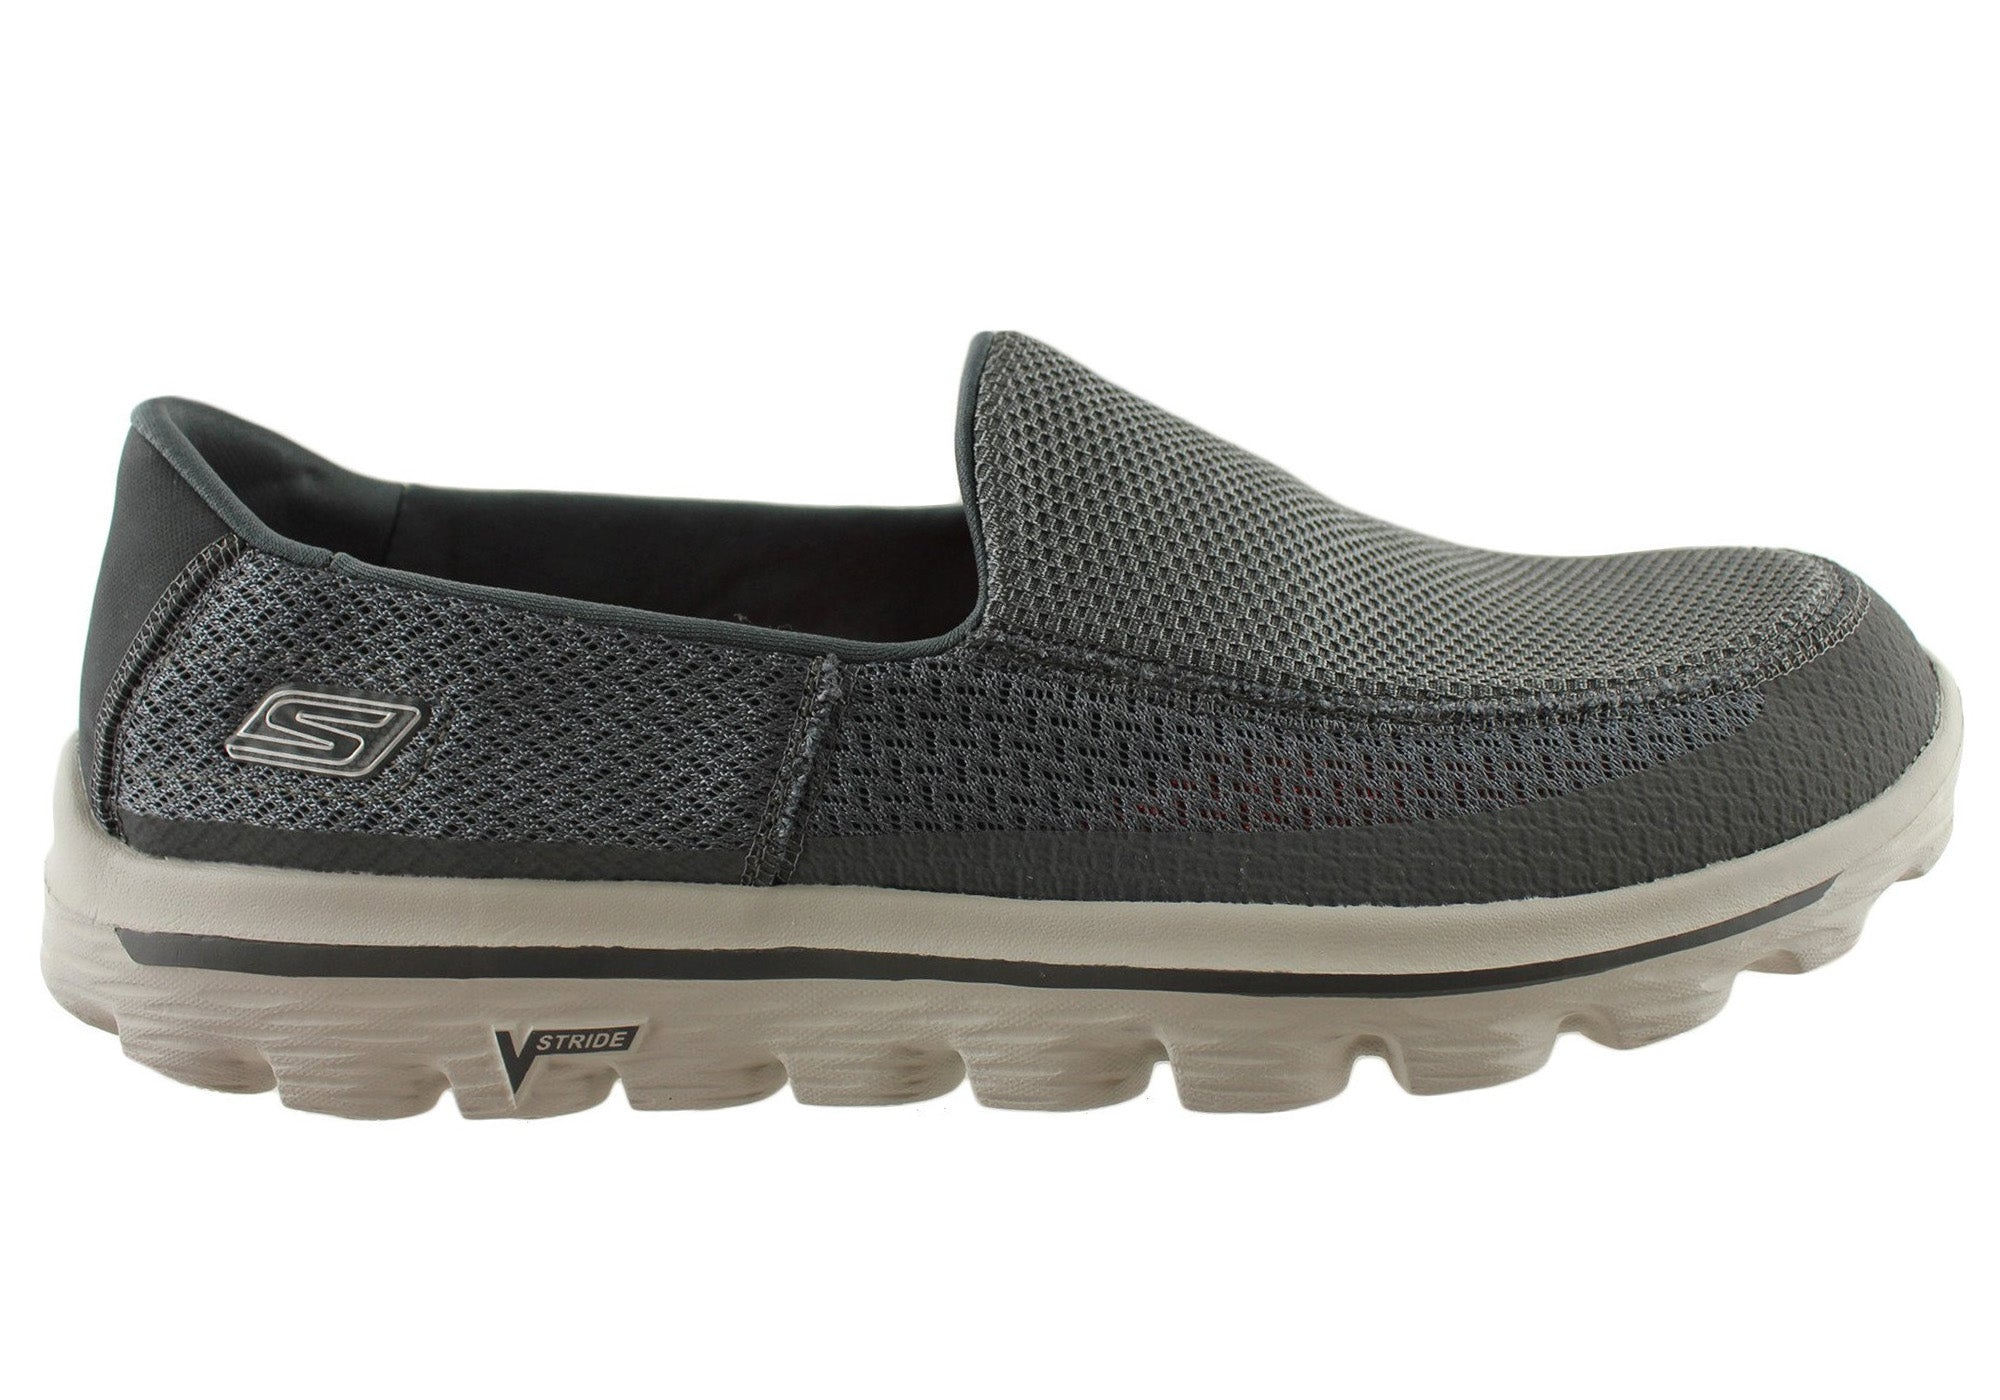 ae31b22aa Details about Skechers Go Walk 2 Mens Comfortable Slip On Casual Shoes